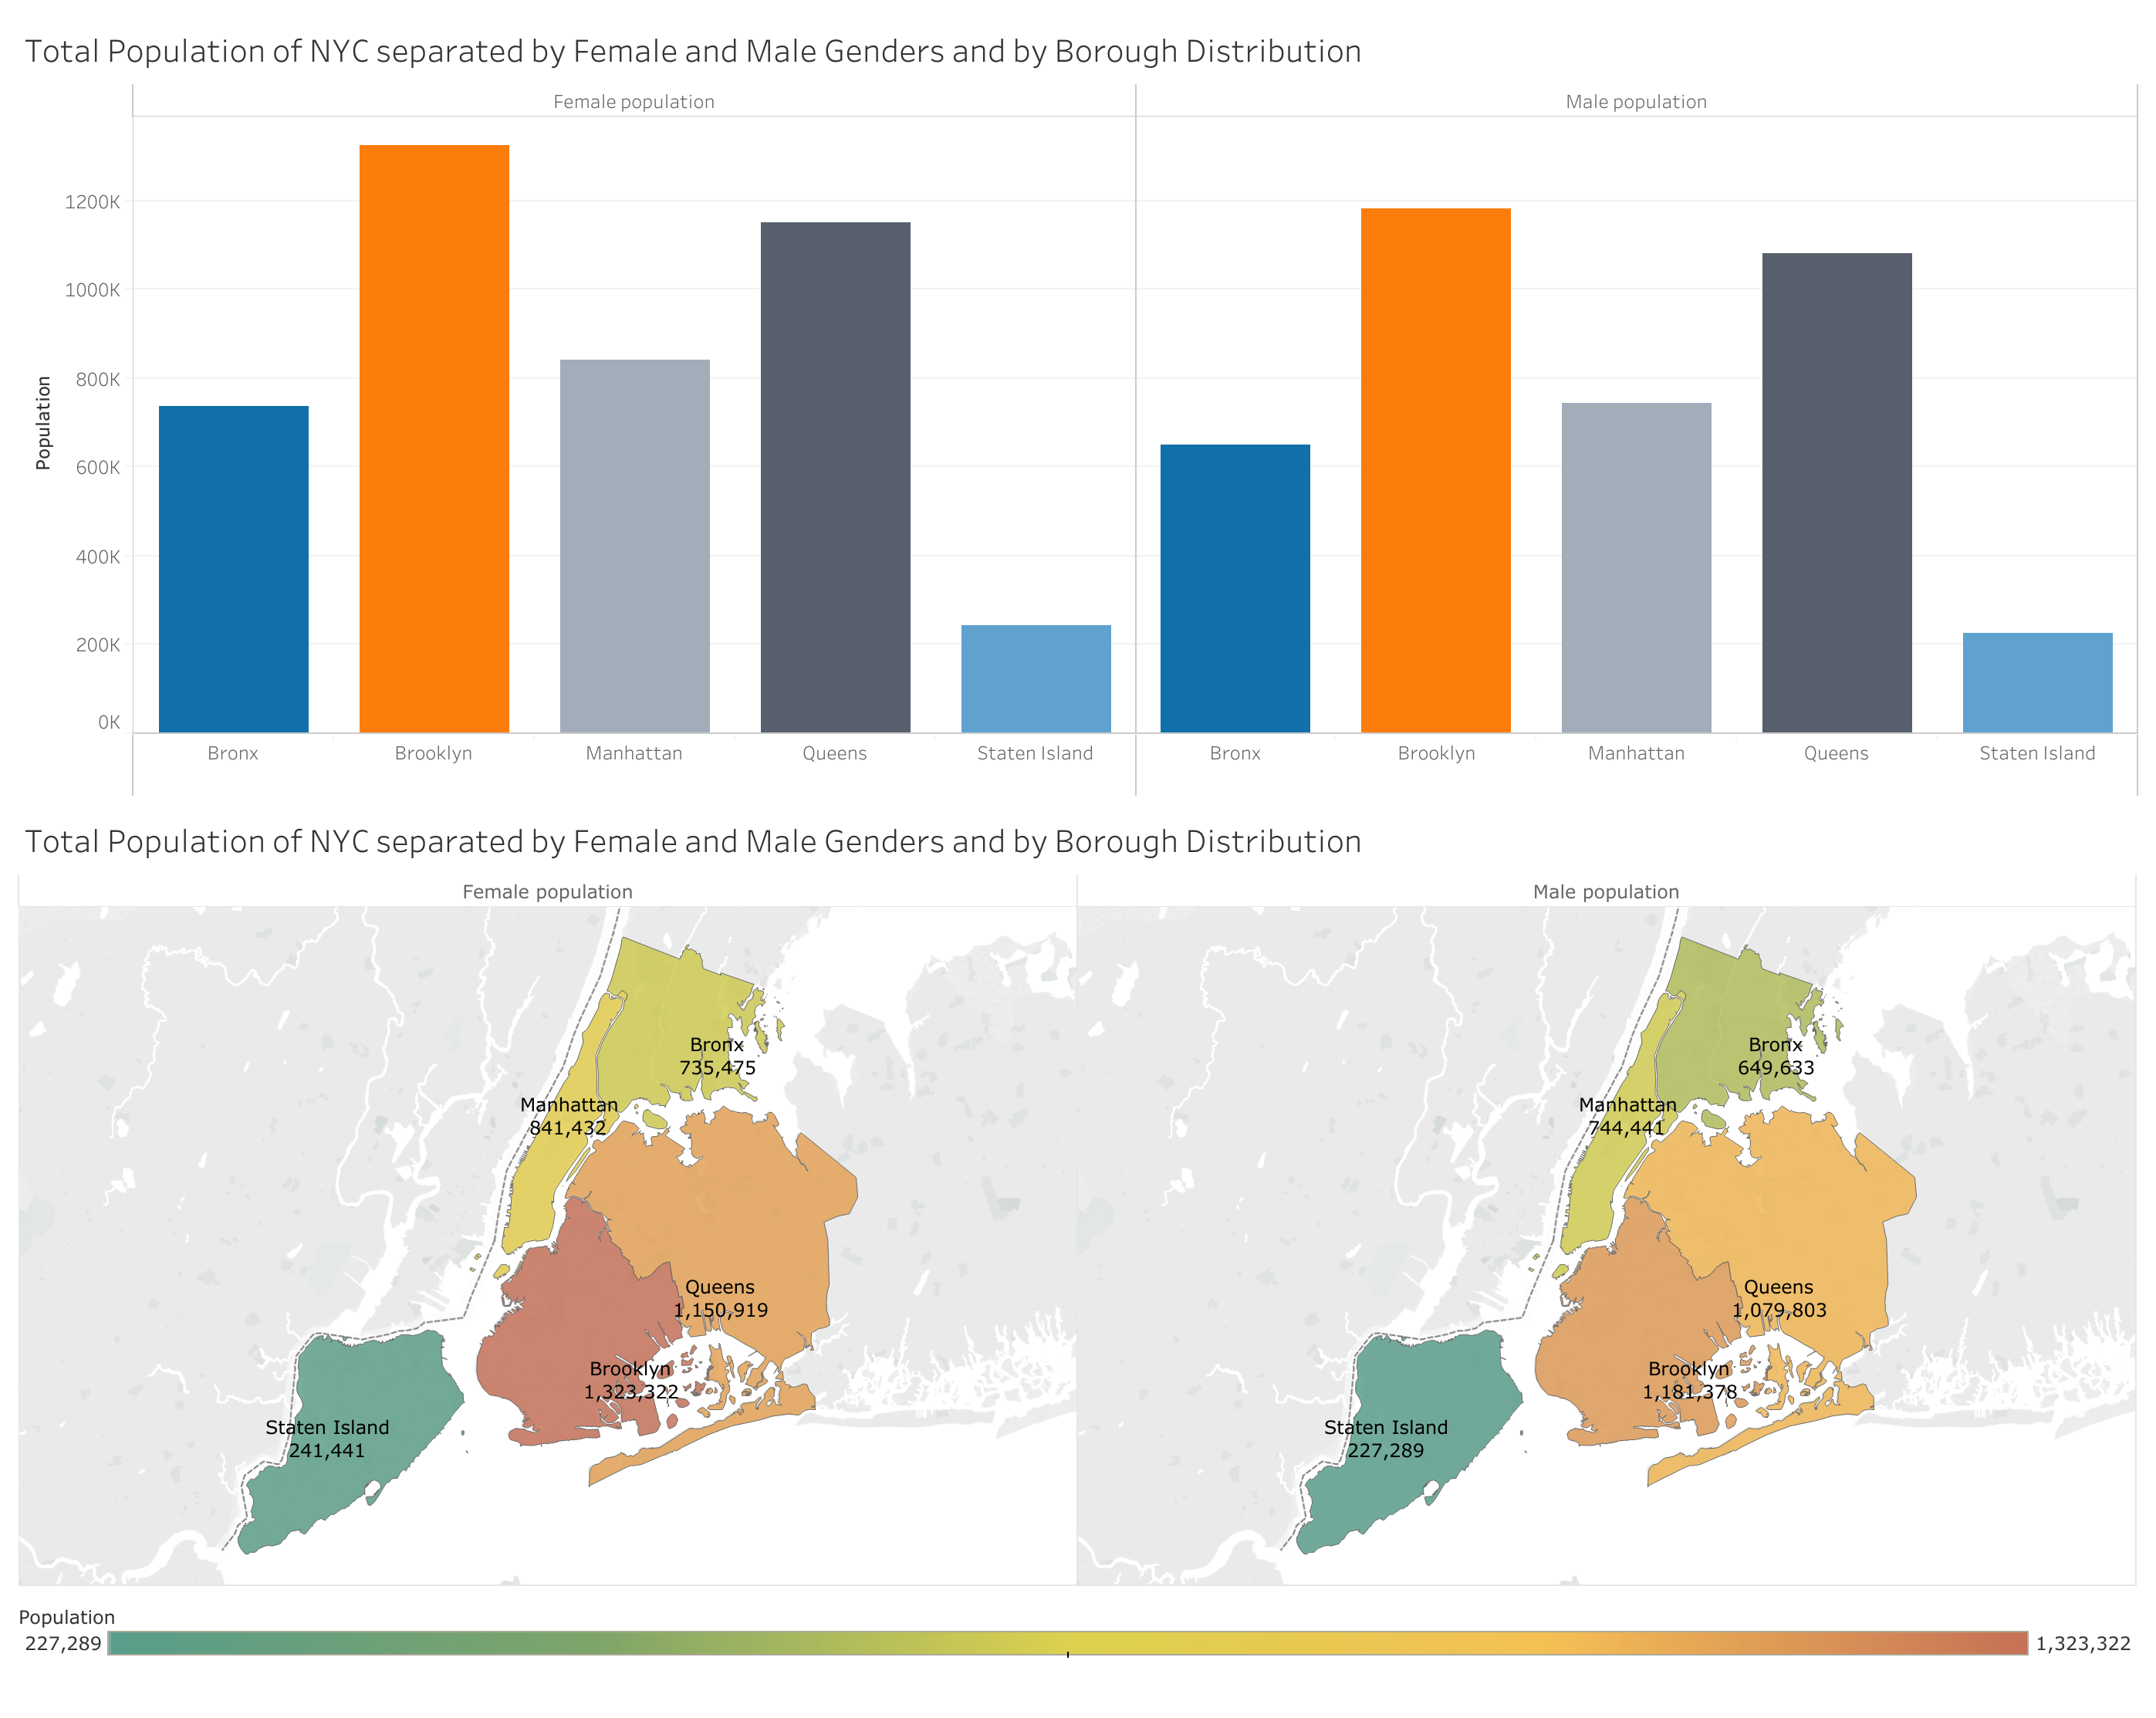 Dashboard: Visualizations of Total Population of NYC separated by Female and Male Genders and by Borough Distribution